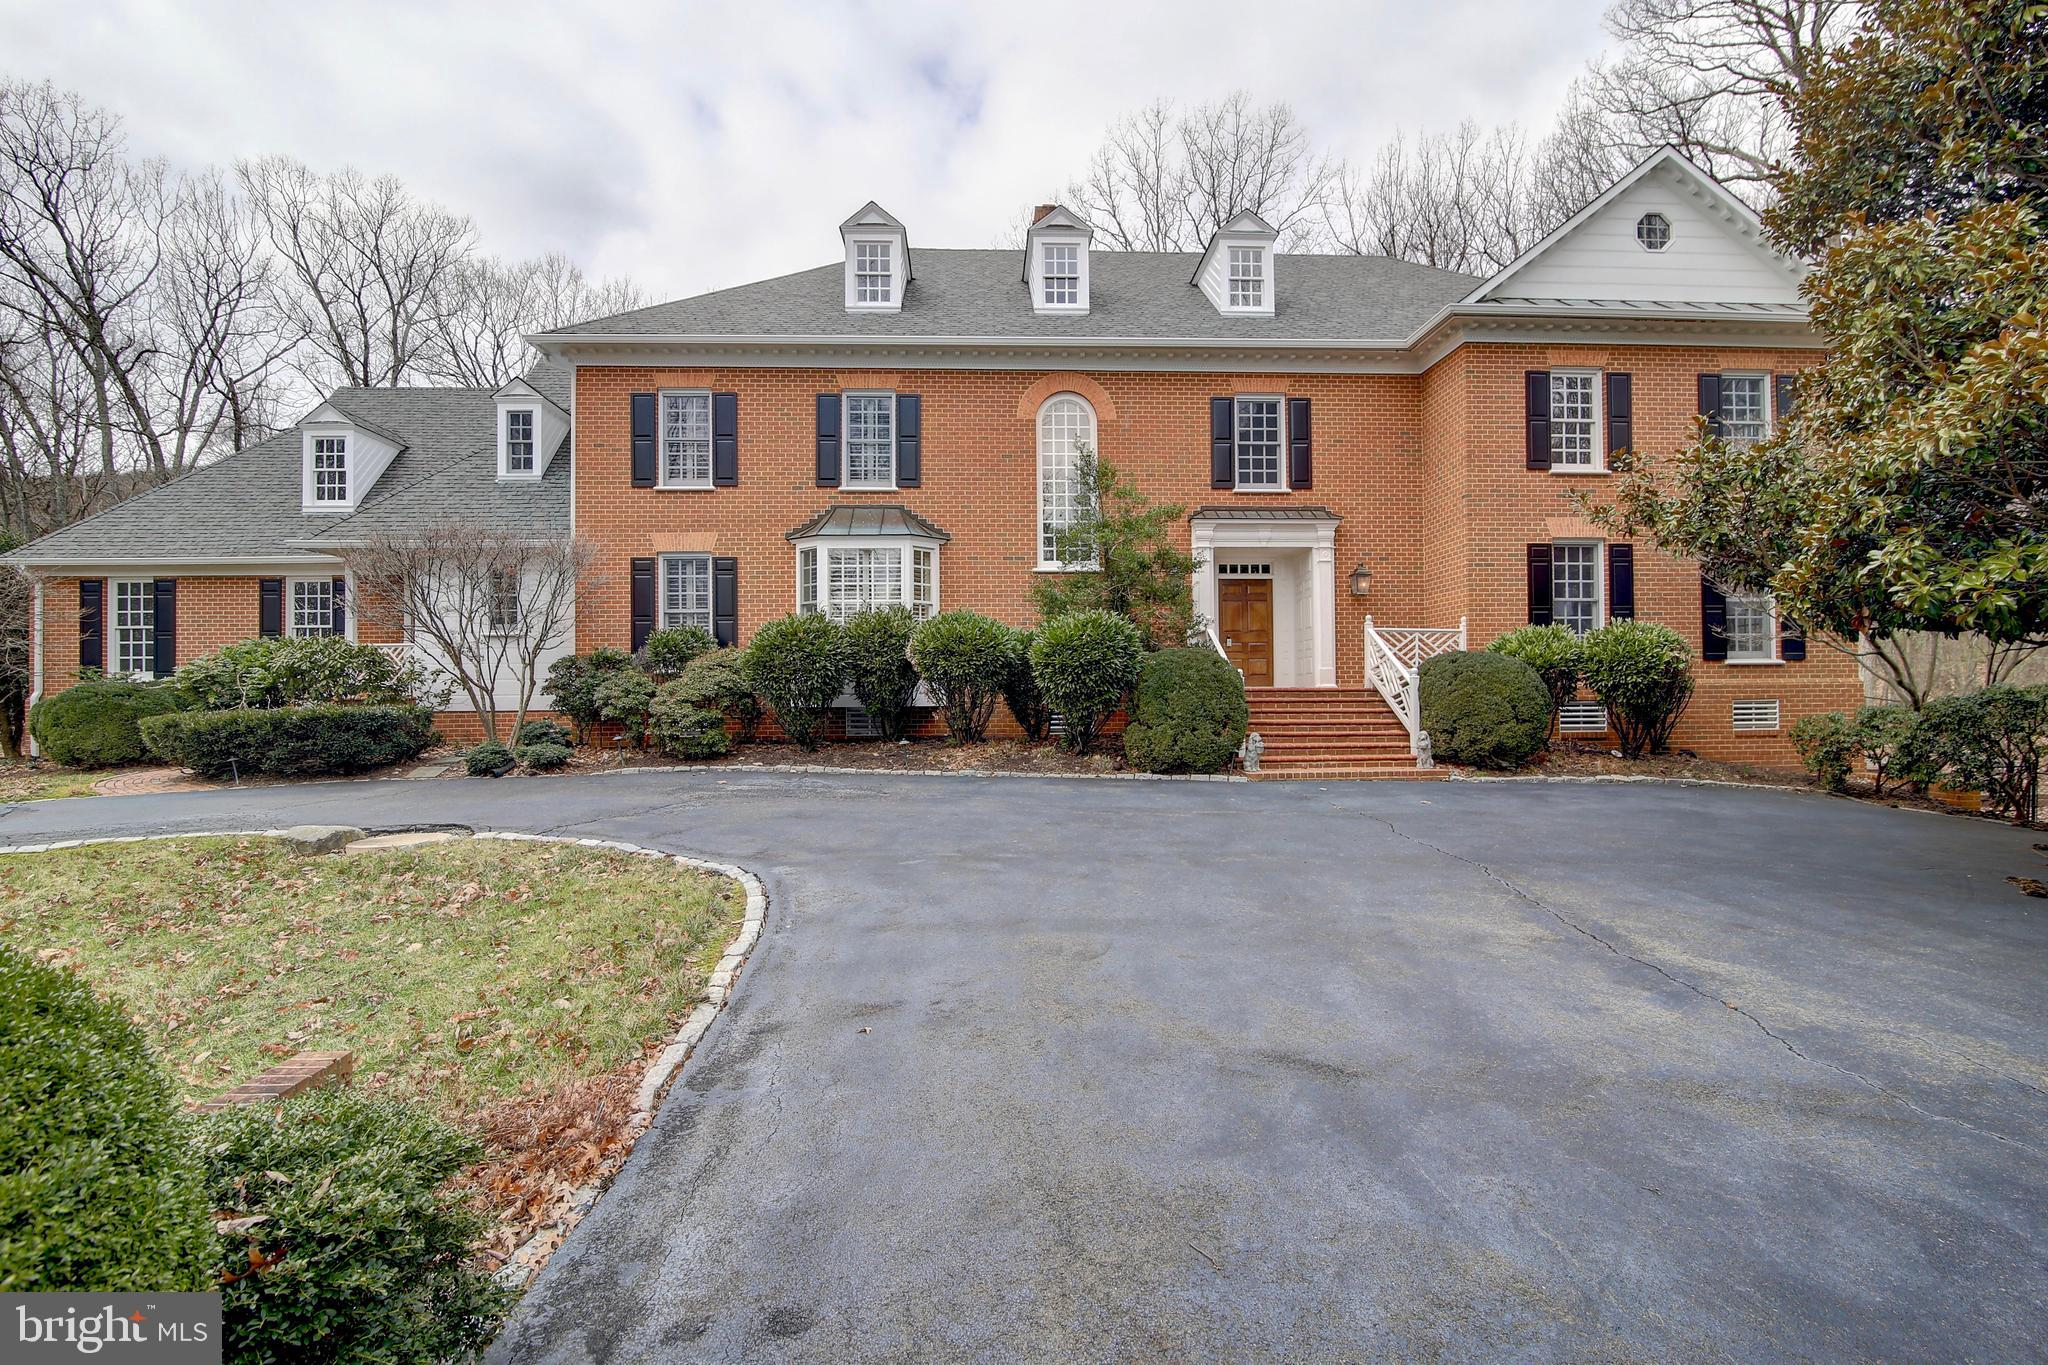 3390 MOUNTAIN ROAD, HAYMARKET, VA 20169